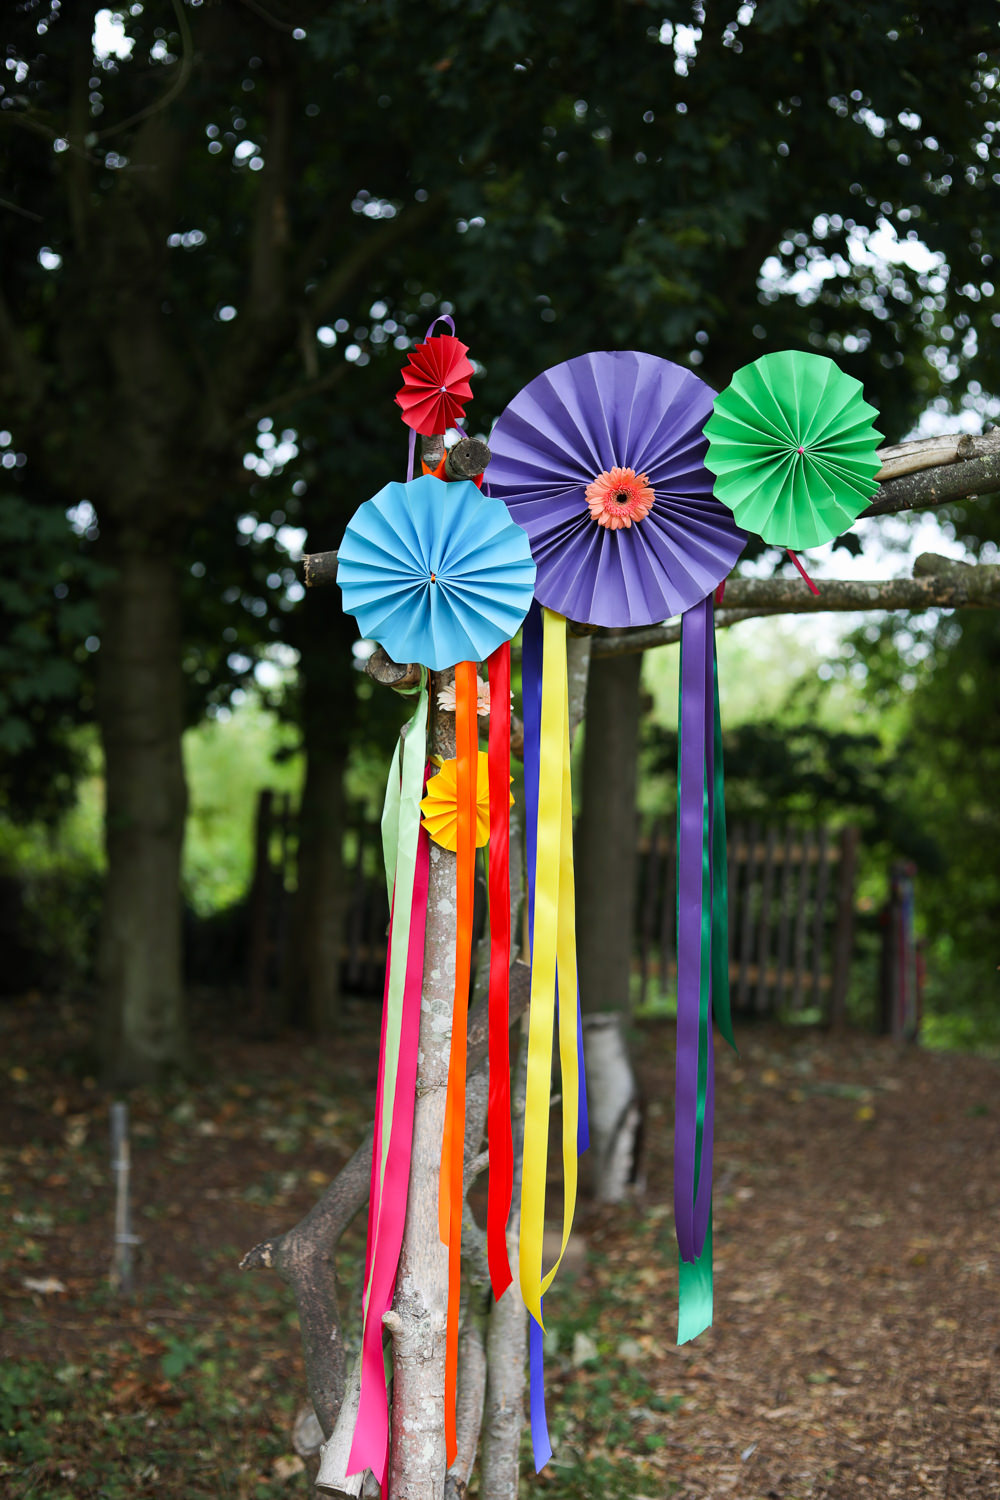 Backdrop Ceremony Arch Pinwheels Ribbons Rainbow Colourful Multicolour Enchanted Garden Events Wedding Sharon Cooper Photography